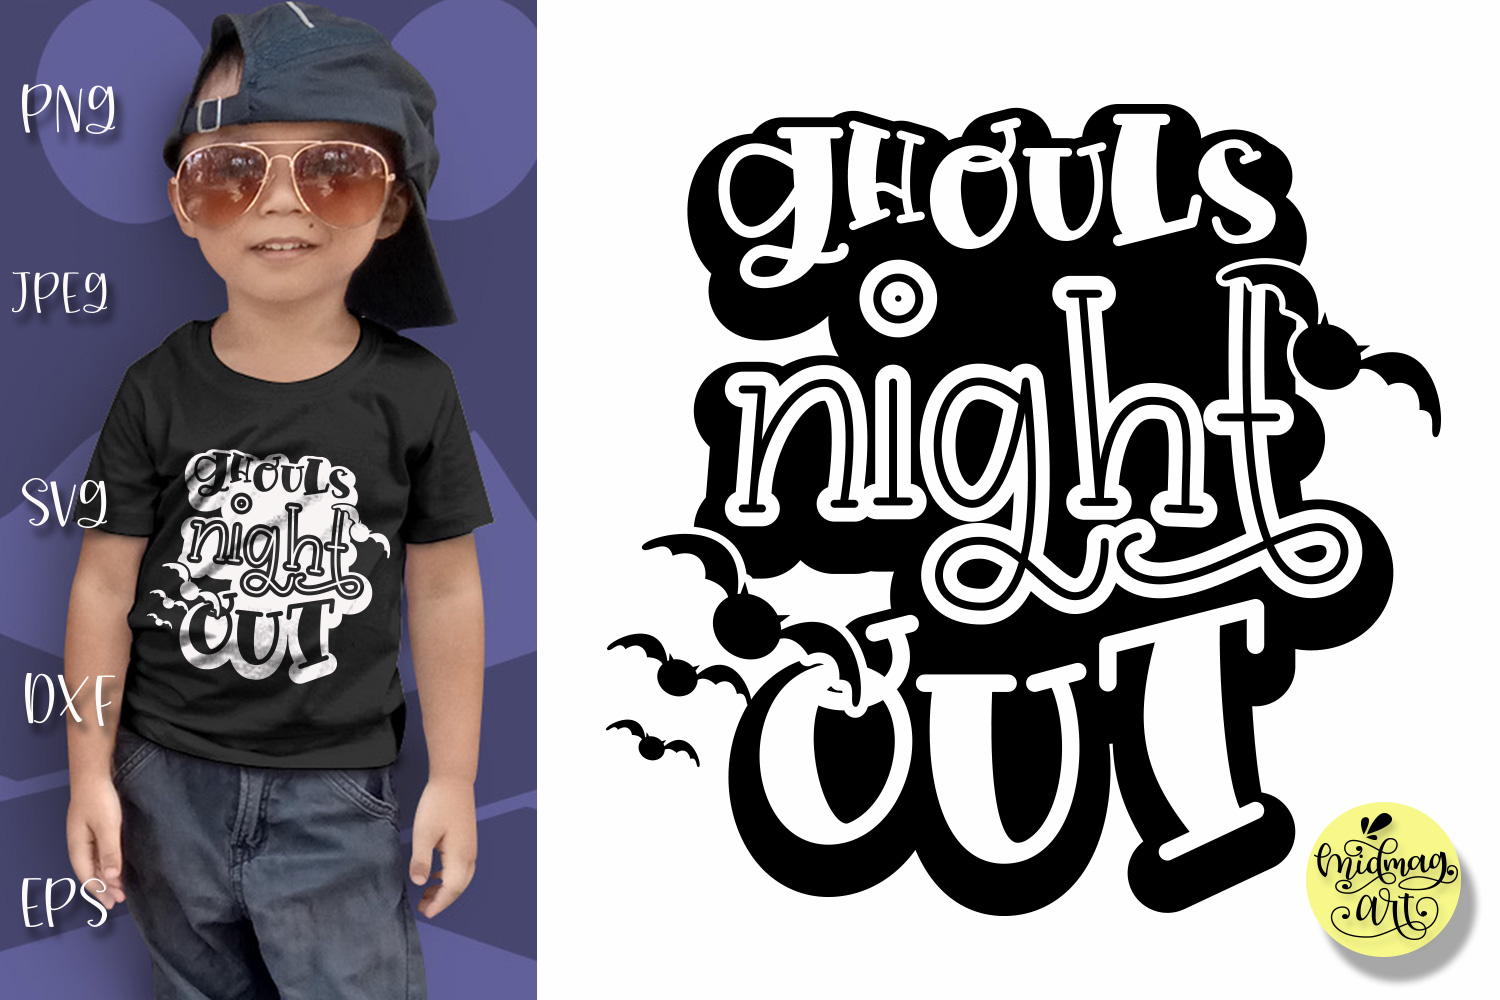 Download Free Ghouls Night Out Graphic By Midmagart Creative Fabrica for Cricut Explore, Silhouette and other cutting machines.